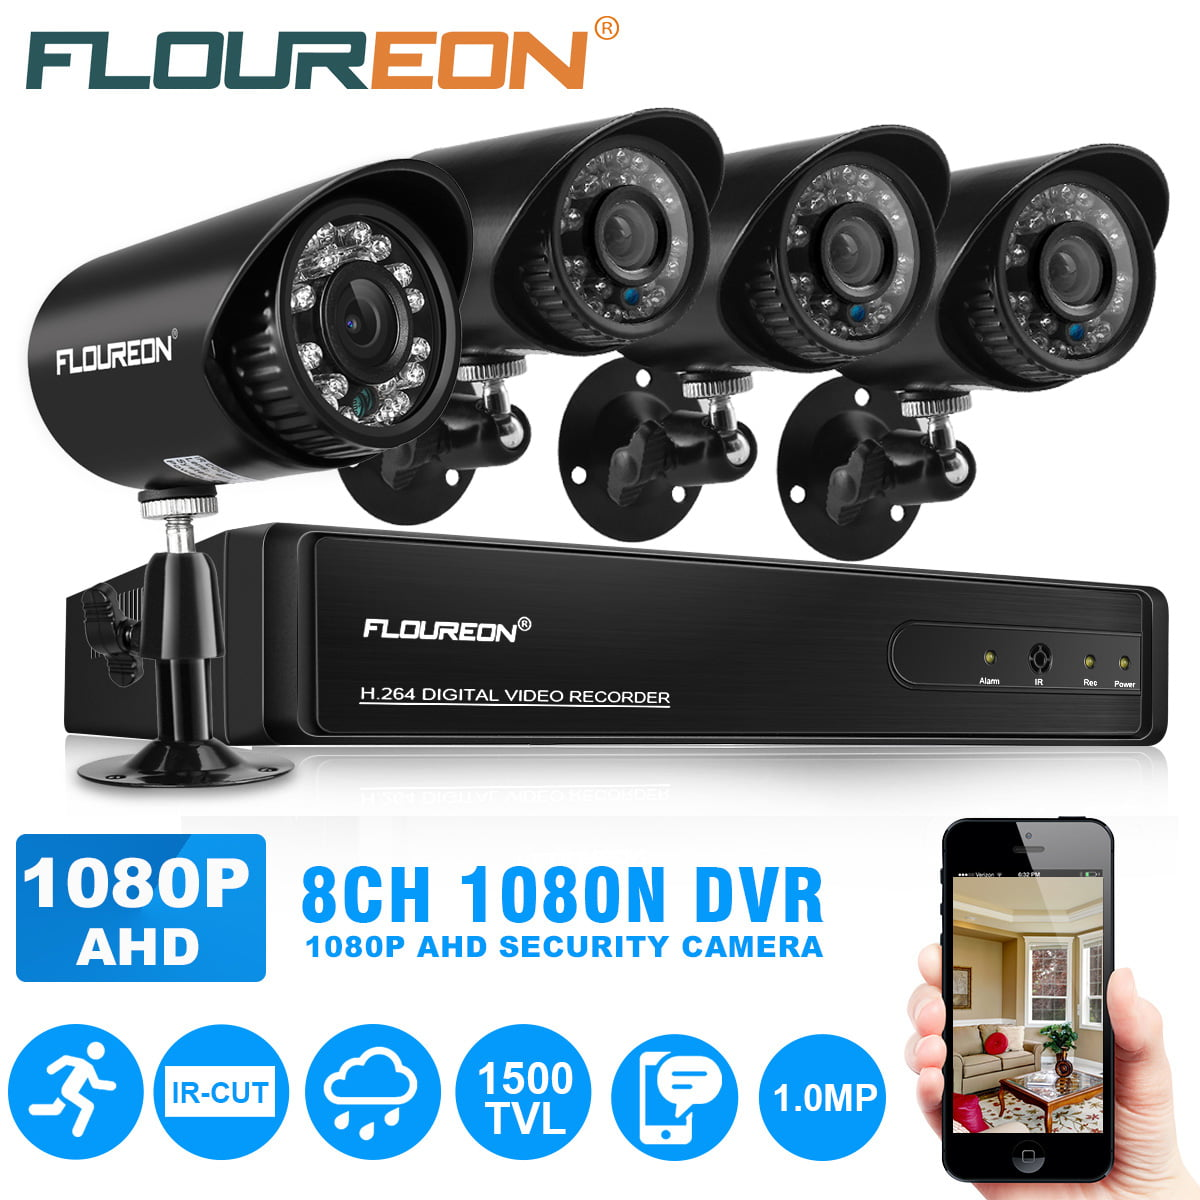 FLOUREON HD1080N Security Camera System for Home